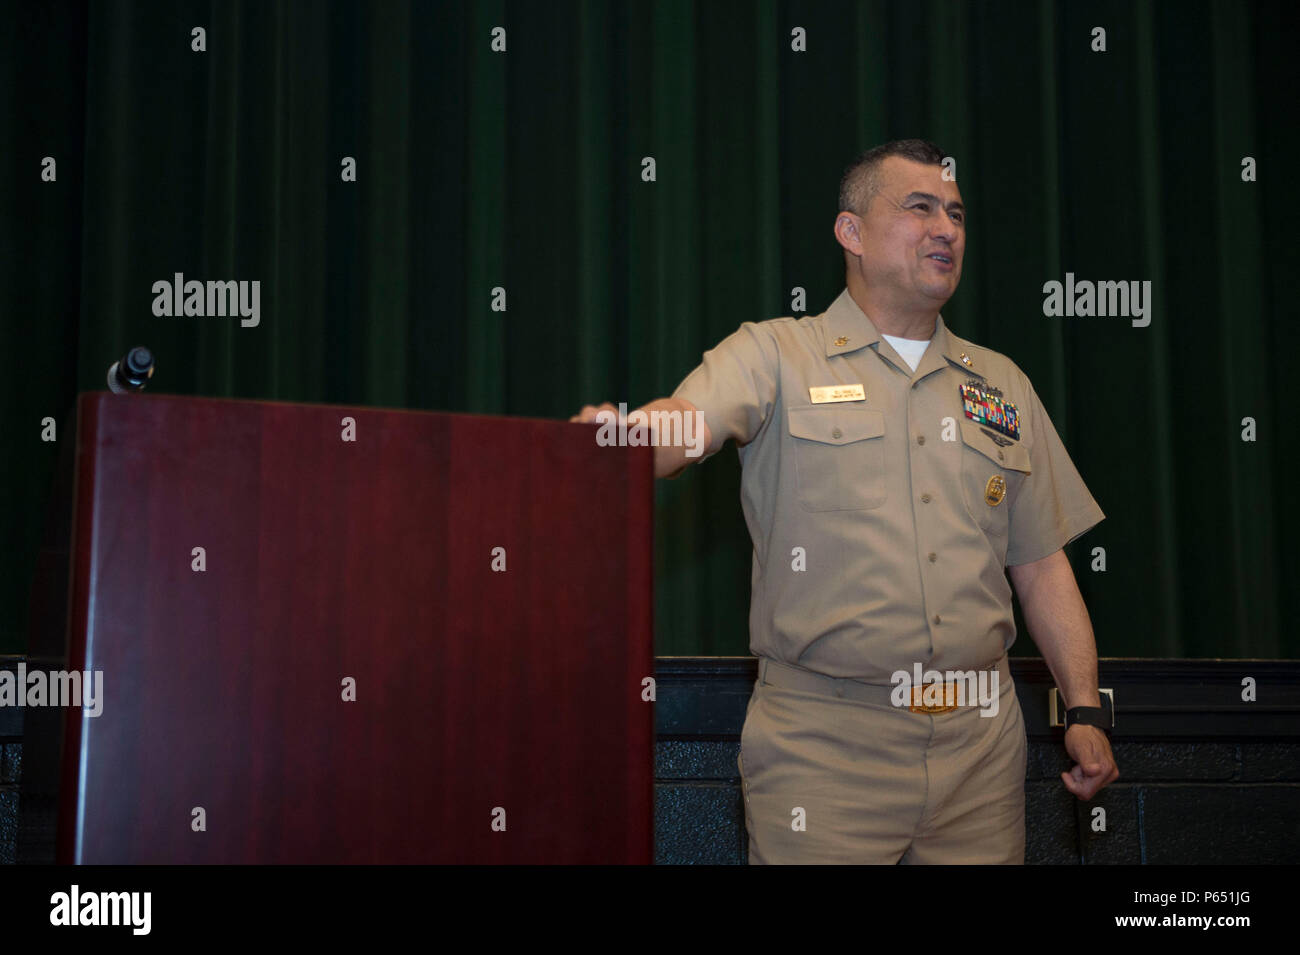 160511-N-TA425-293 NORFOLK (May 11, 2016)  Naval Station Norfolk Command Master Chief William Carabollo speaks at the ninth annual First Class Petty Officer Association (FCPOA) Symposium.  FCPOA established the event as a way to help Sailors further their careers, network and get leadership guidance. (U.S. Navy photo by Mass Communication Specialist 2nd Class Erica Yelland/Released) - Stock Image